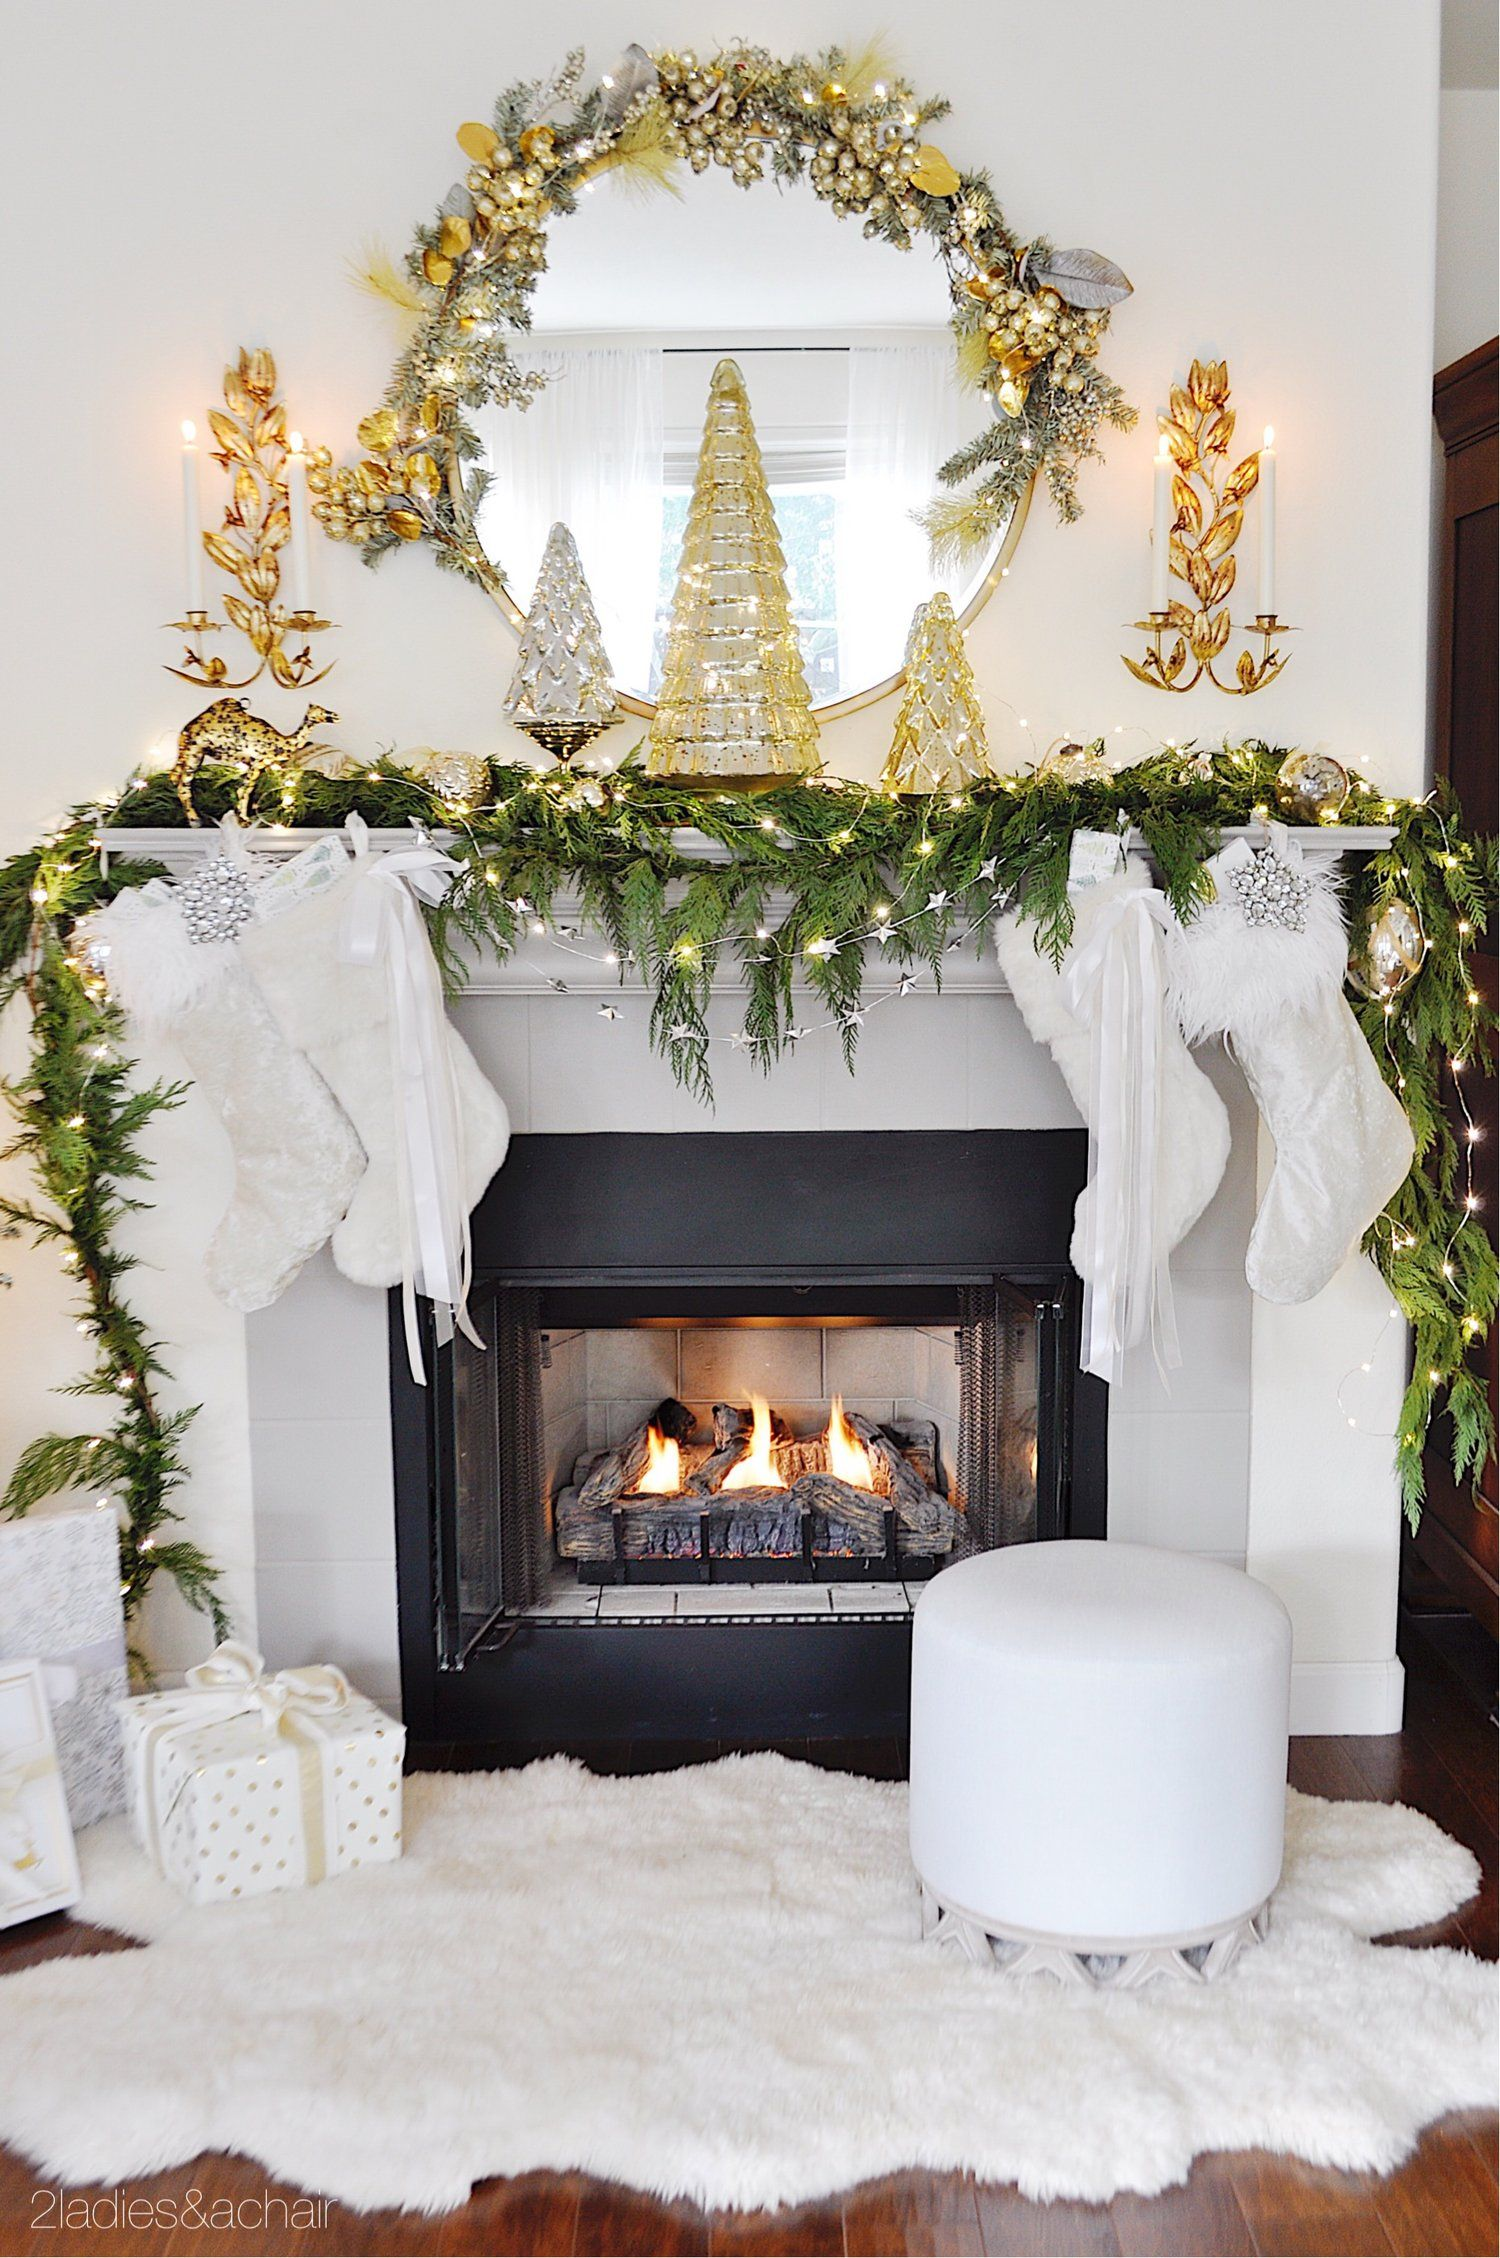 Christmas Home Tour With Rustic Luxe Style 2 Ladies A Chair Christmas Home Christmas Mantel Decorations Modern Christmas Decor